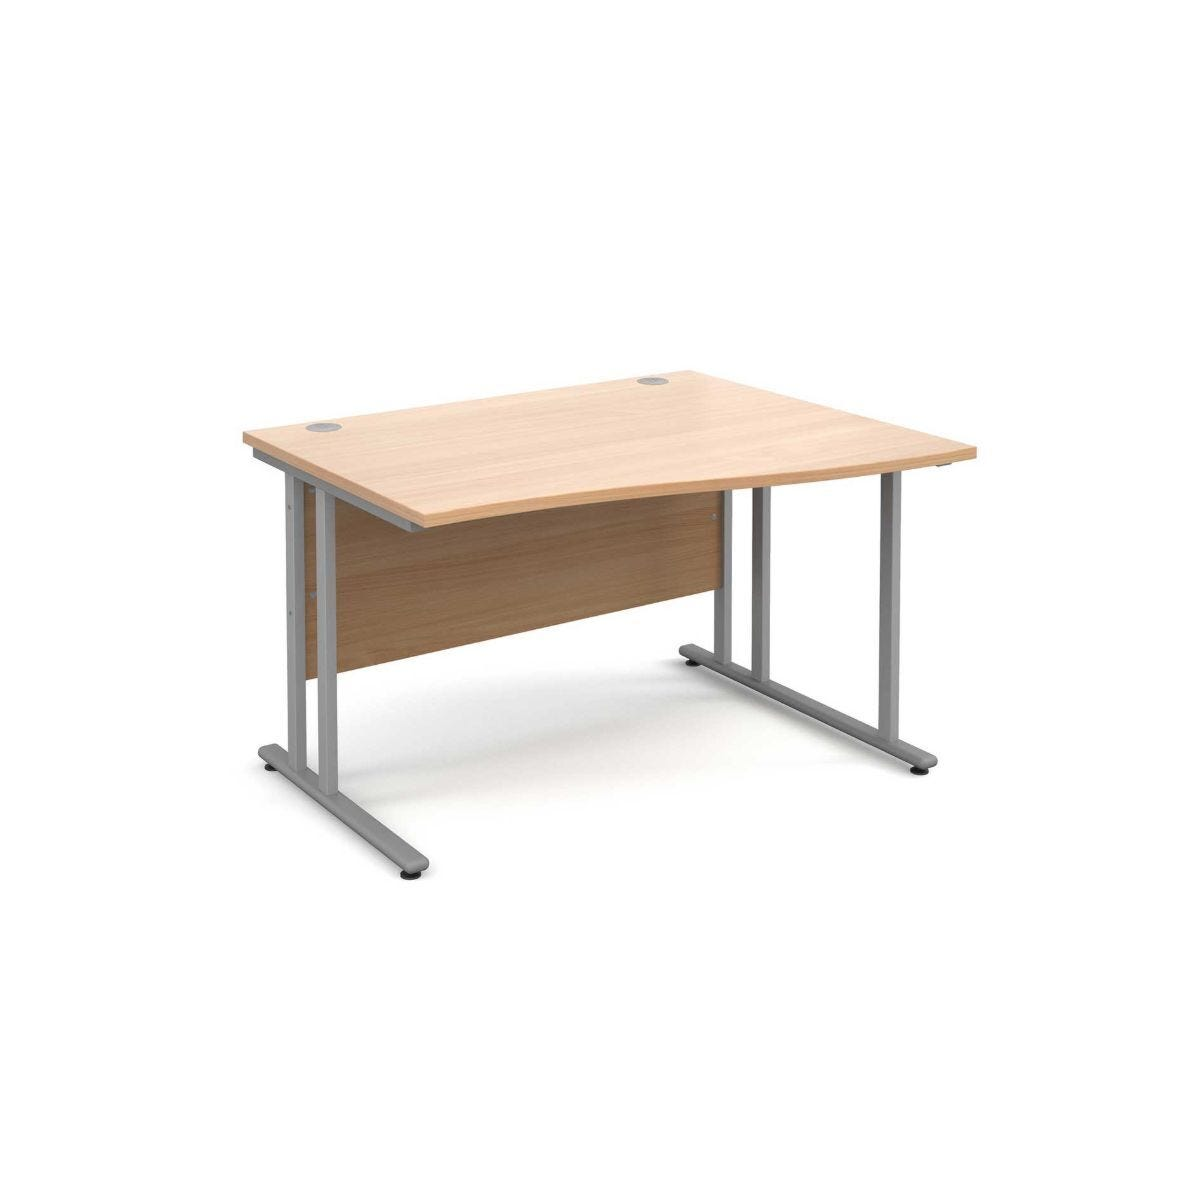 Maestro 25 Right Hand Wave 1200 Desk with Silver Legs